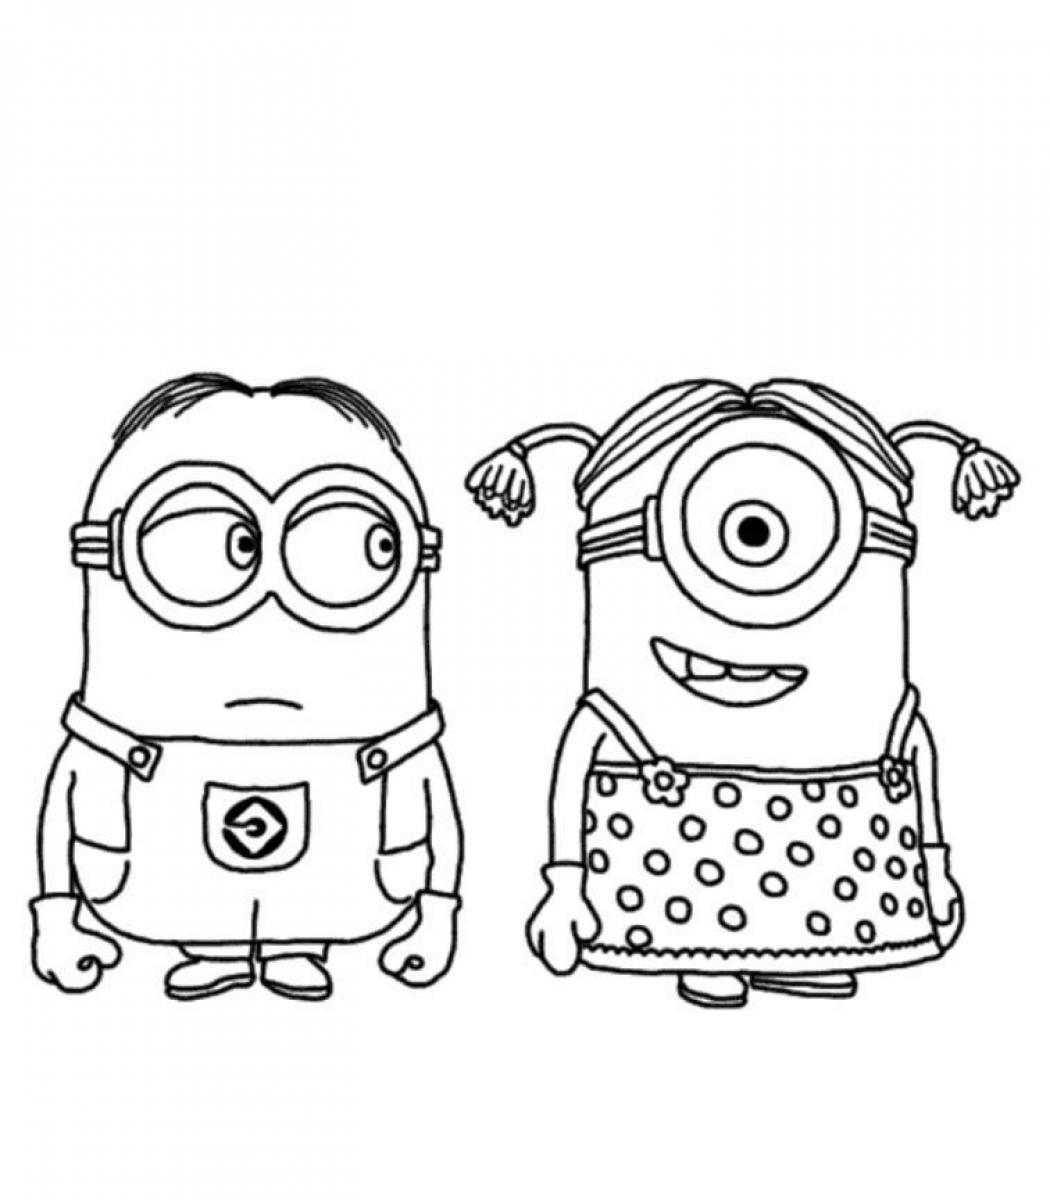 956x684 Coloring Page 1 1050x1200 Minions